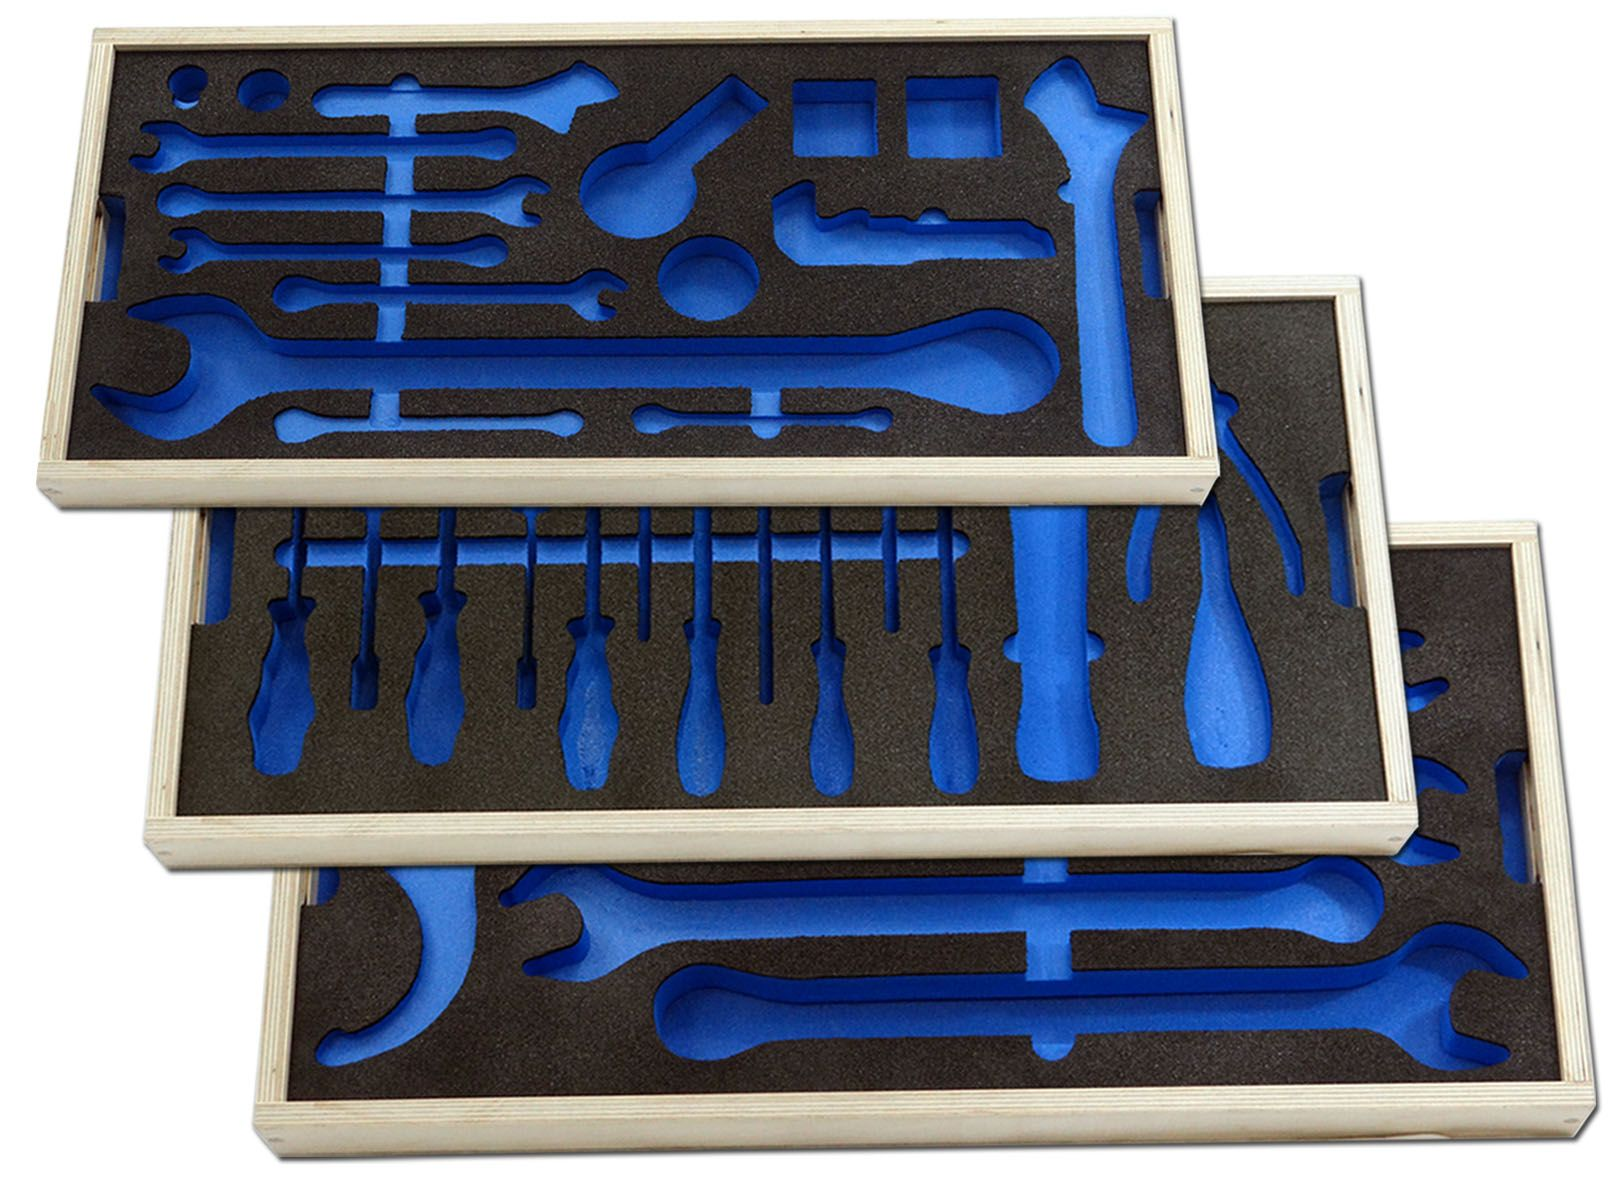 CNC Routed Foam Insert Wooden tool tray with foam shadow boards These fantastic foam